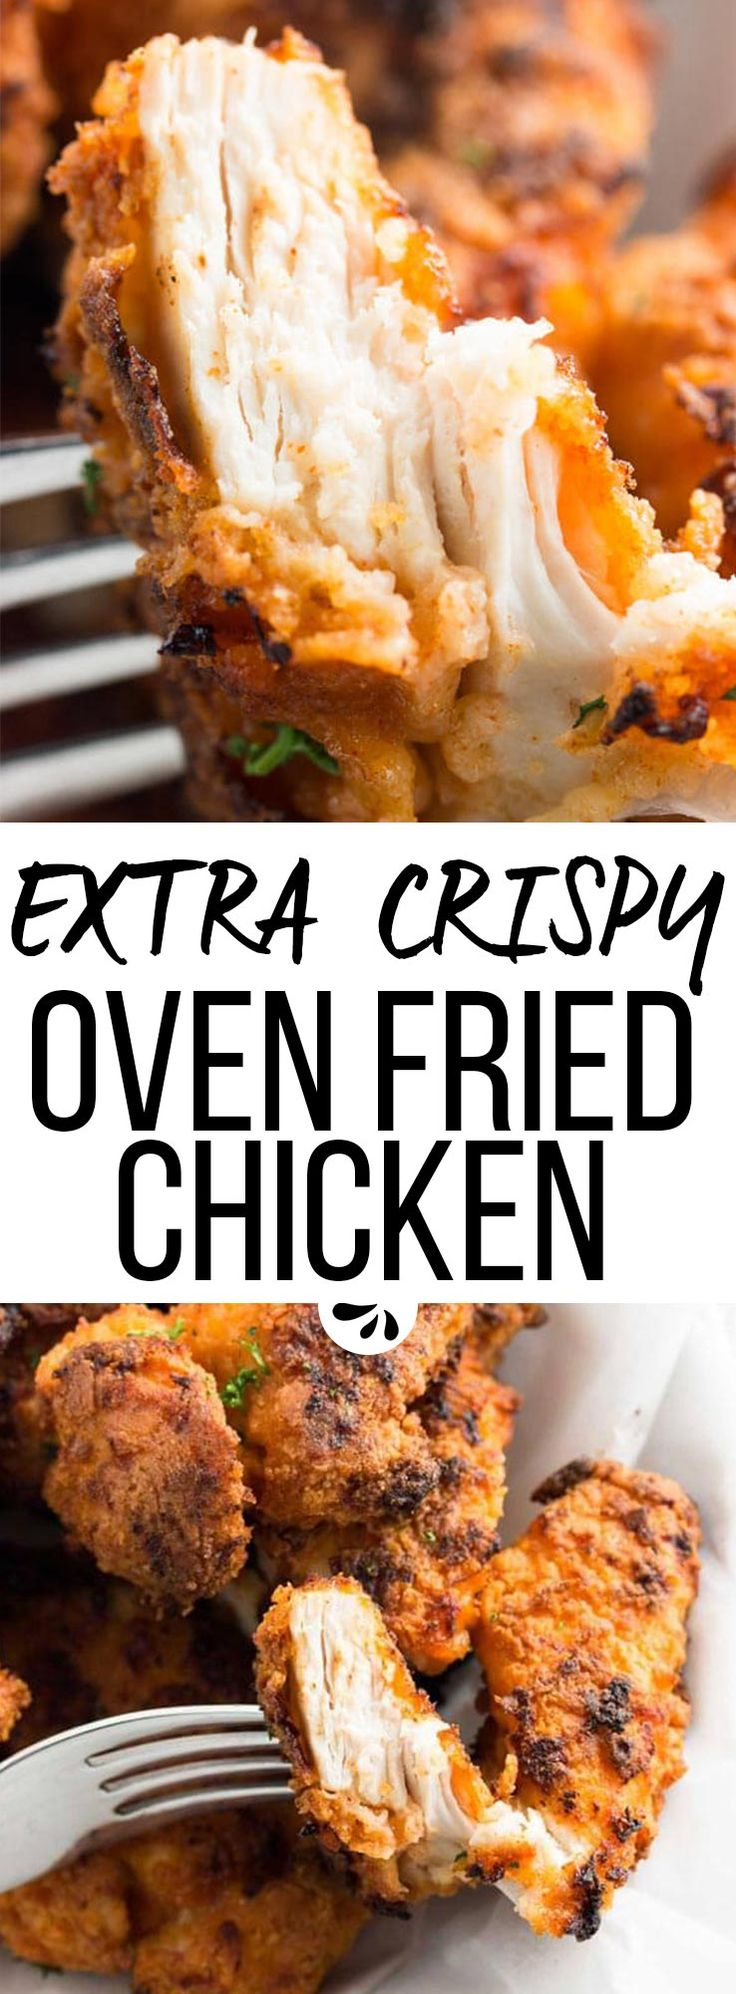 Magnificent frying skinless chicken breast